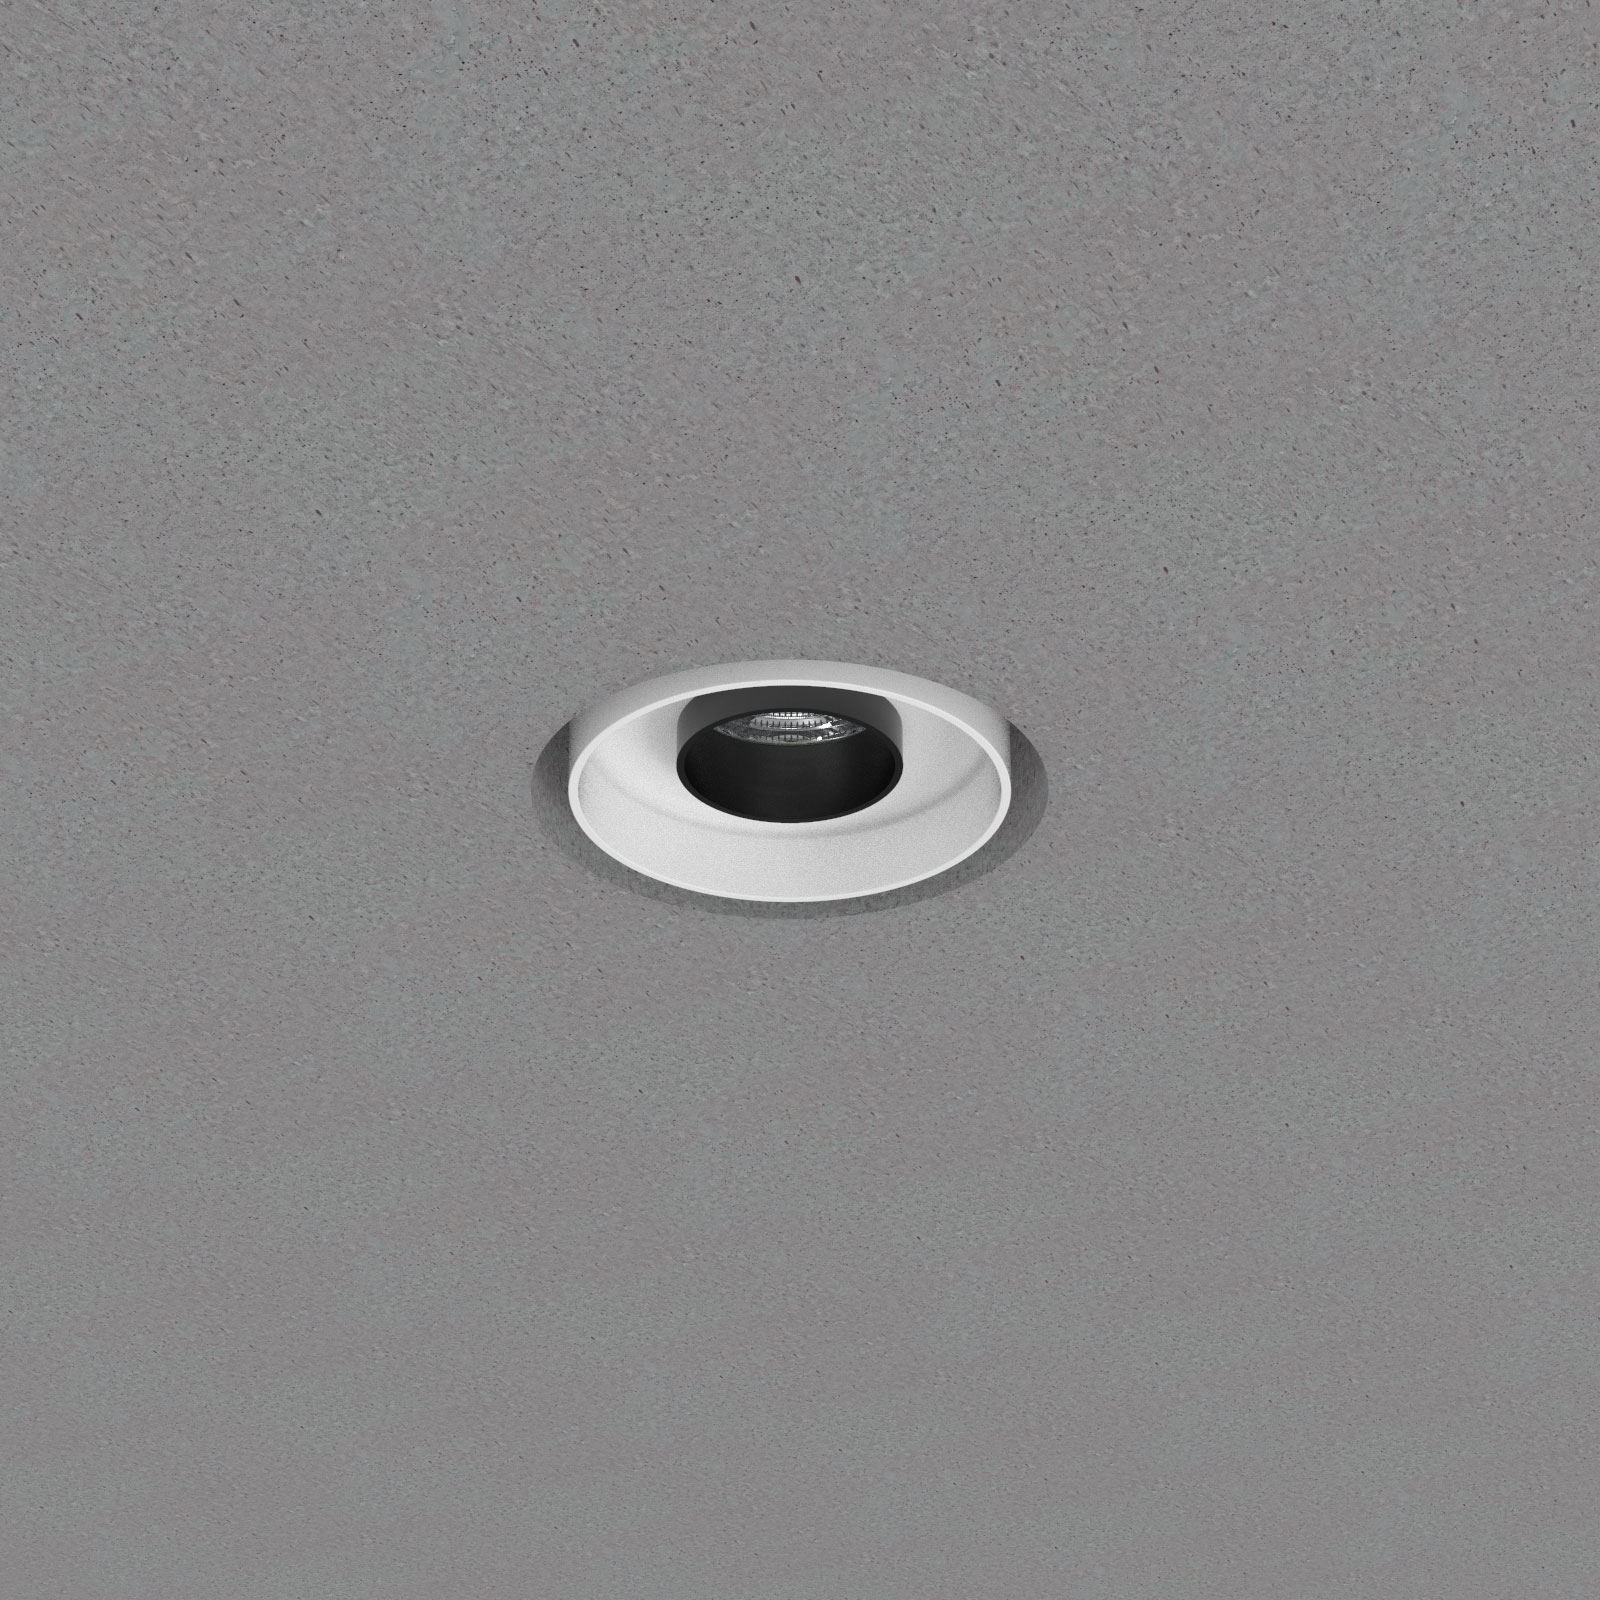 Mono 100 Trimless Concrete Recessed Downlighter Type 2